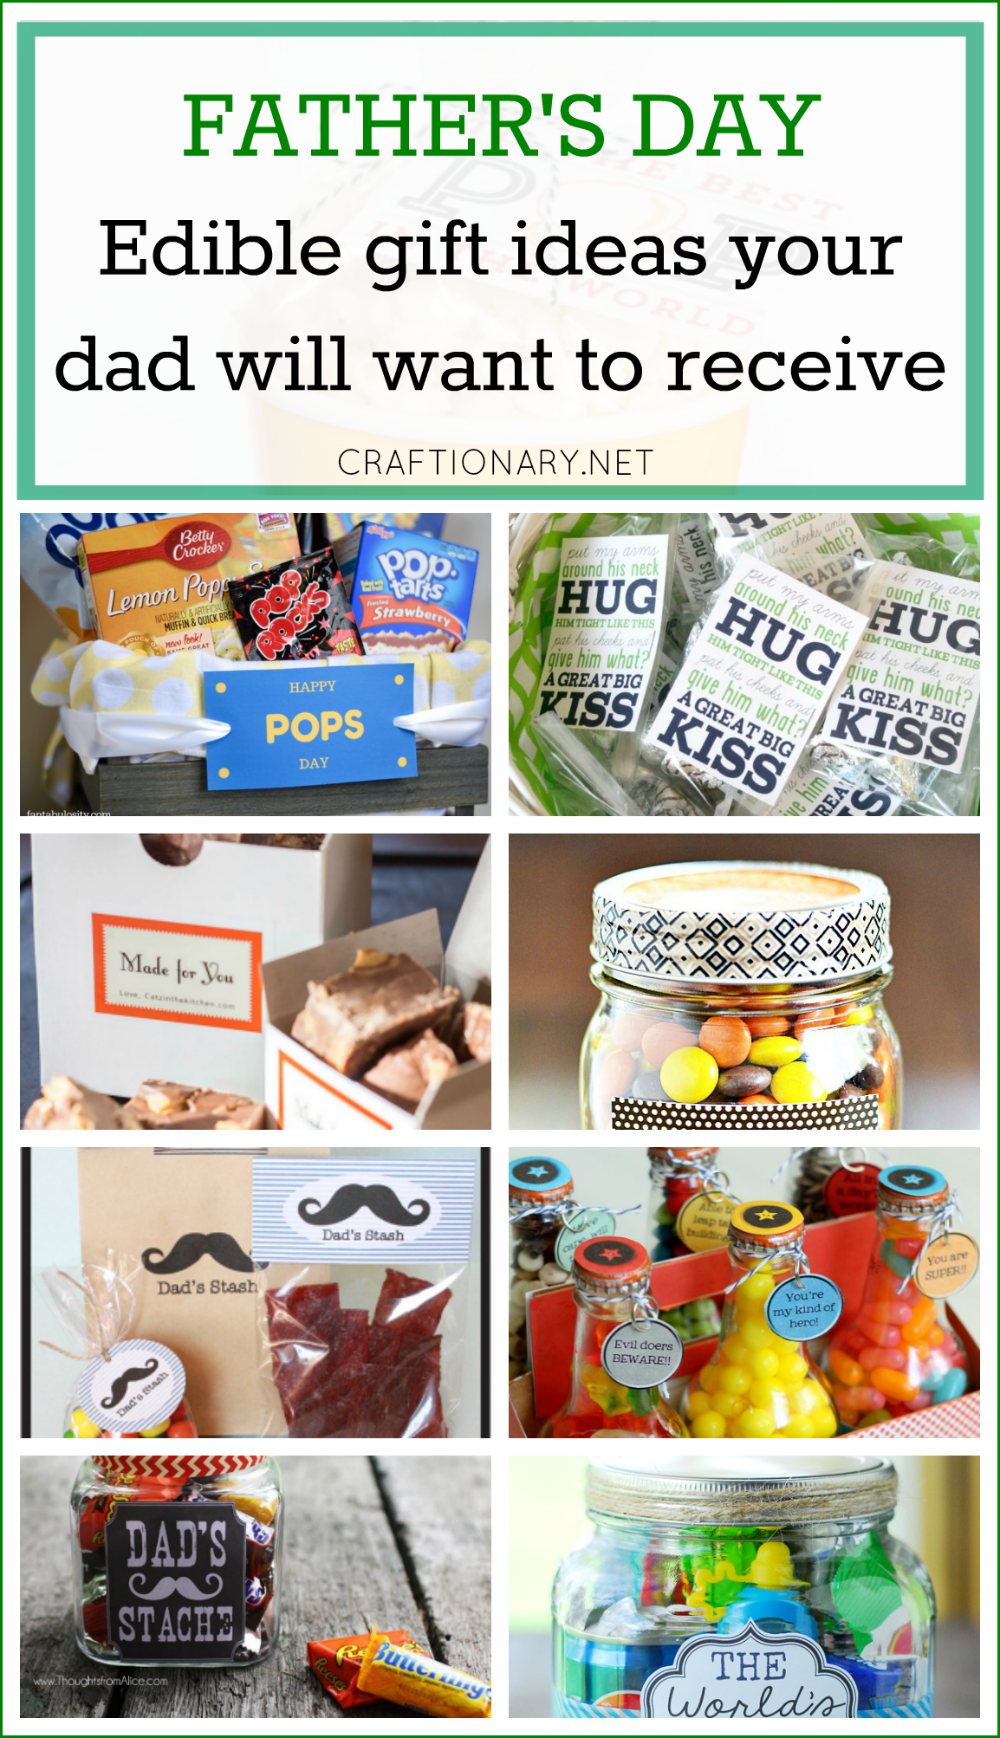 eb7e8425a5ee 20 Edible Gift Ideas for Father s Day that your dad will want ...